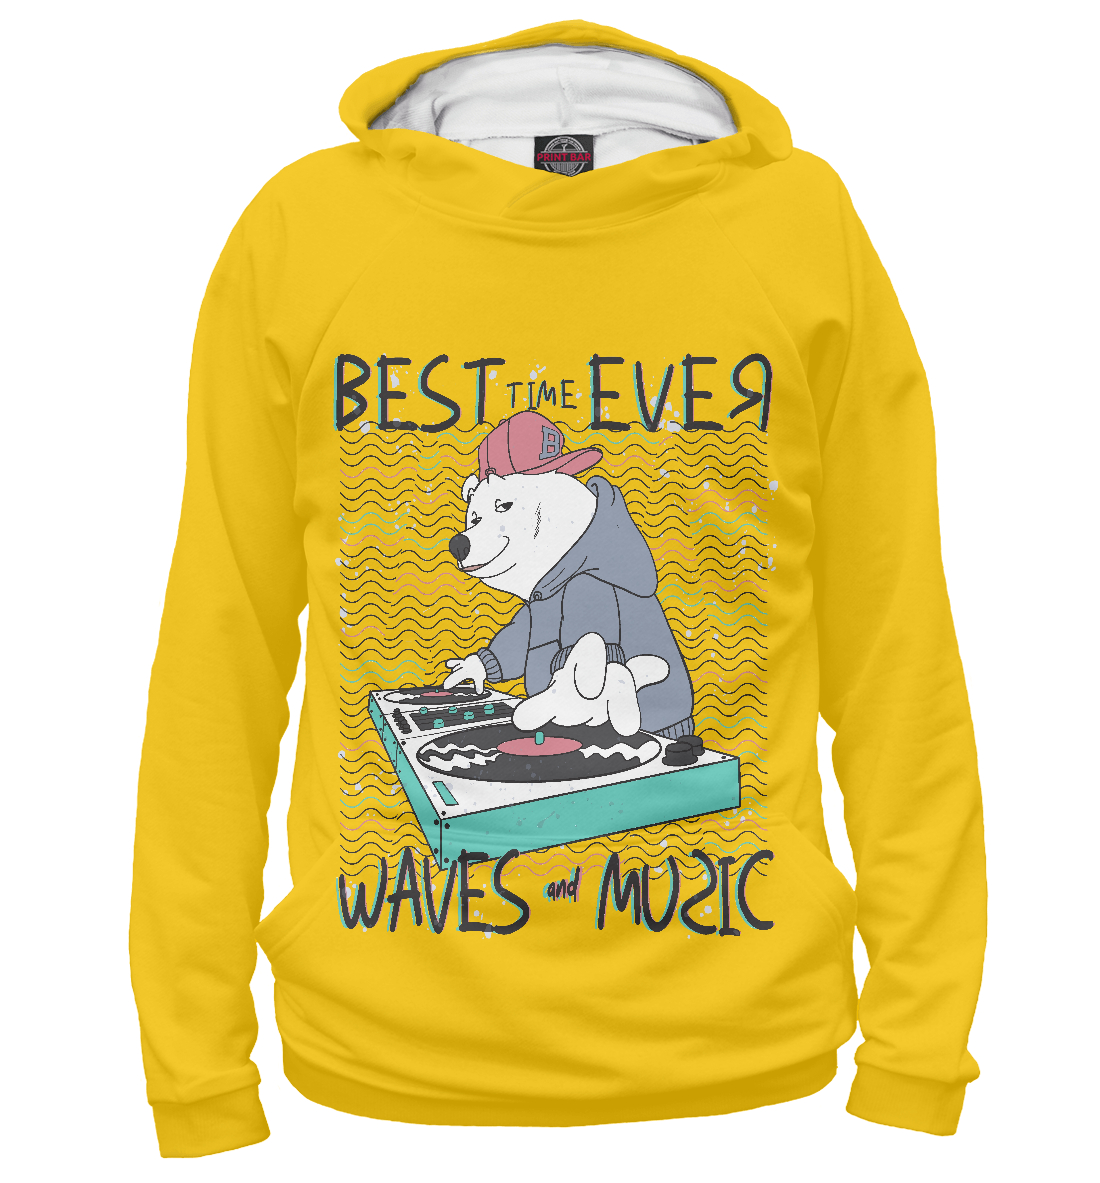 Waves and music mikael niemi popular music